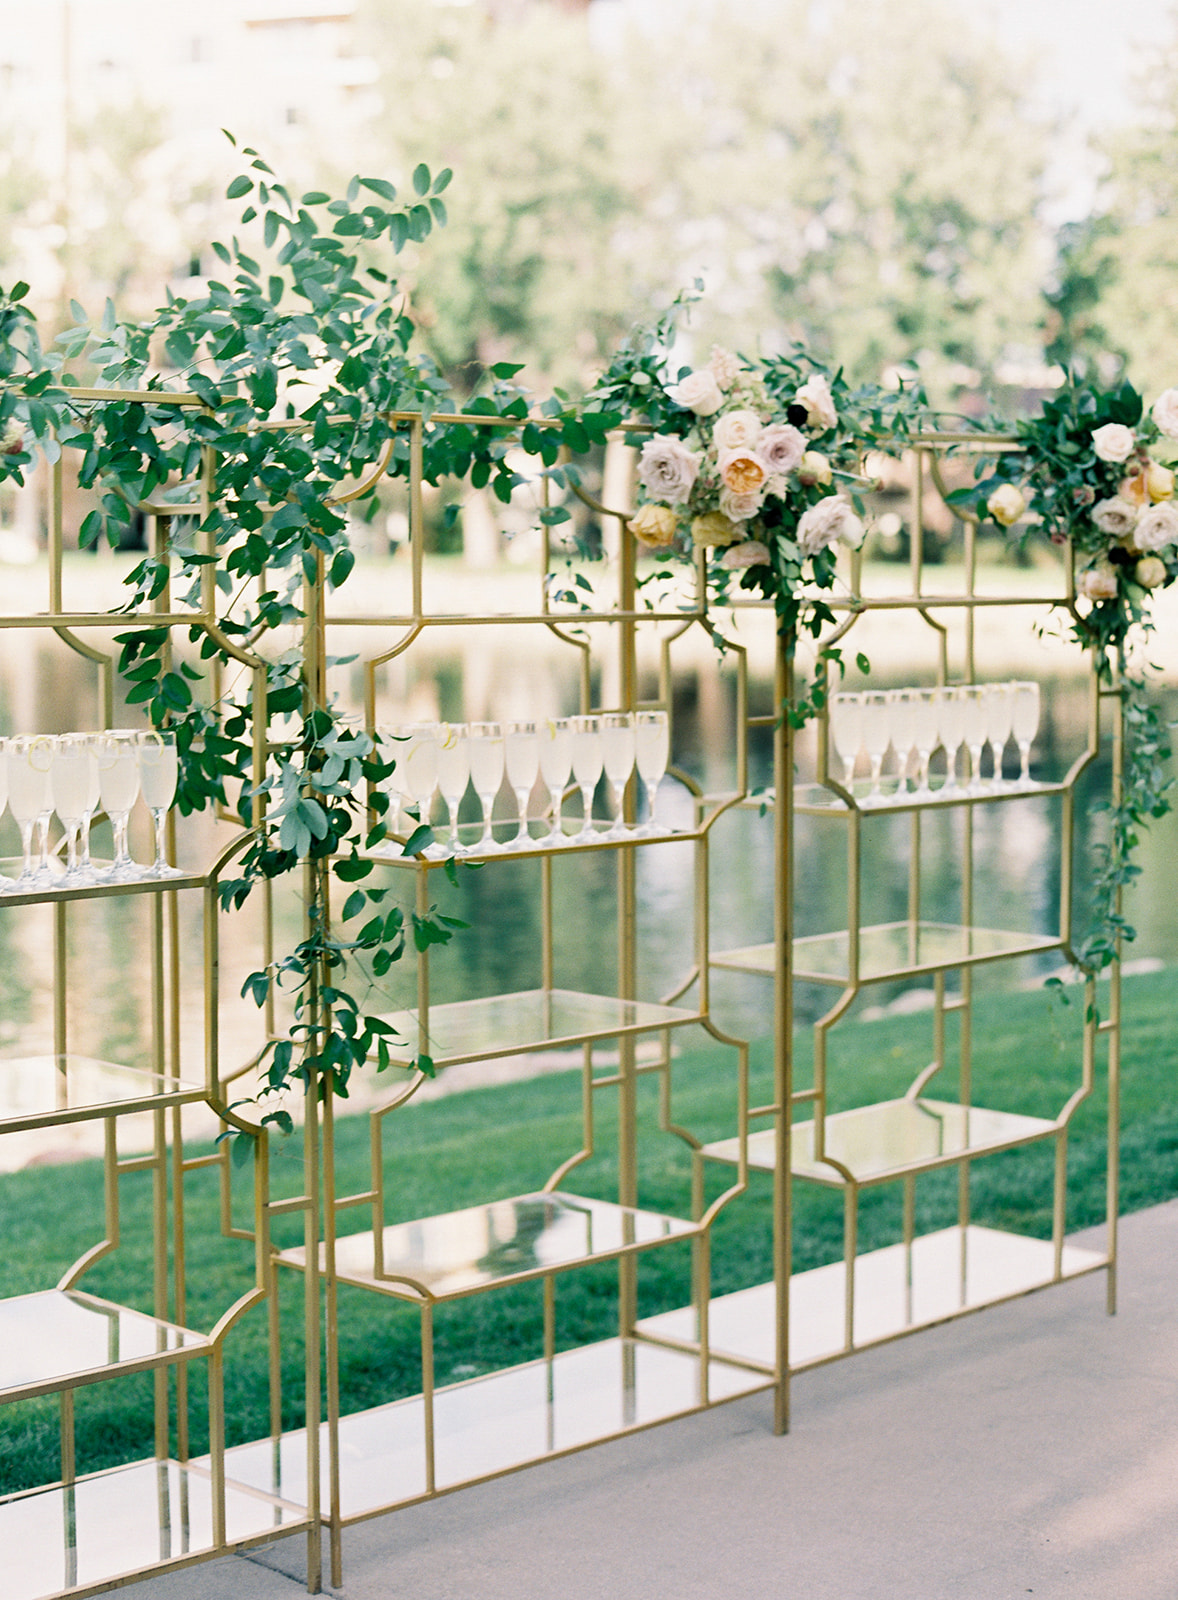 drinks on glass shelves decorated with greenery and flowers